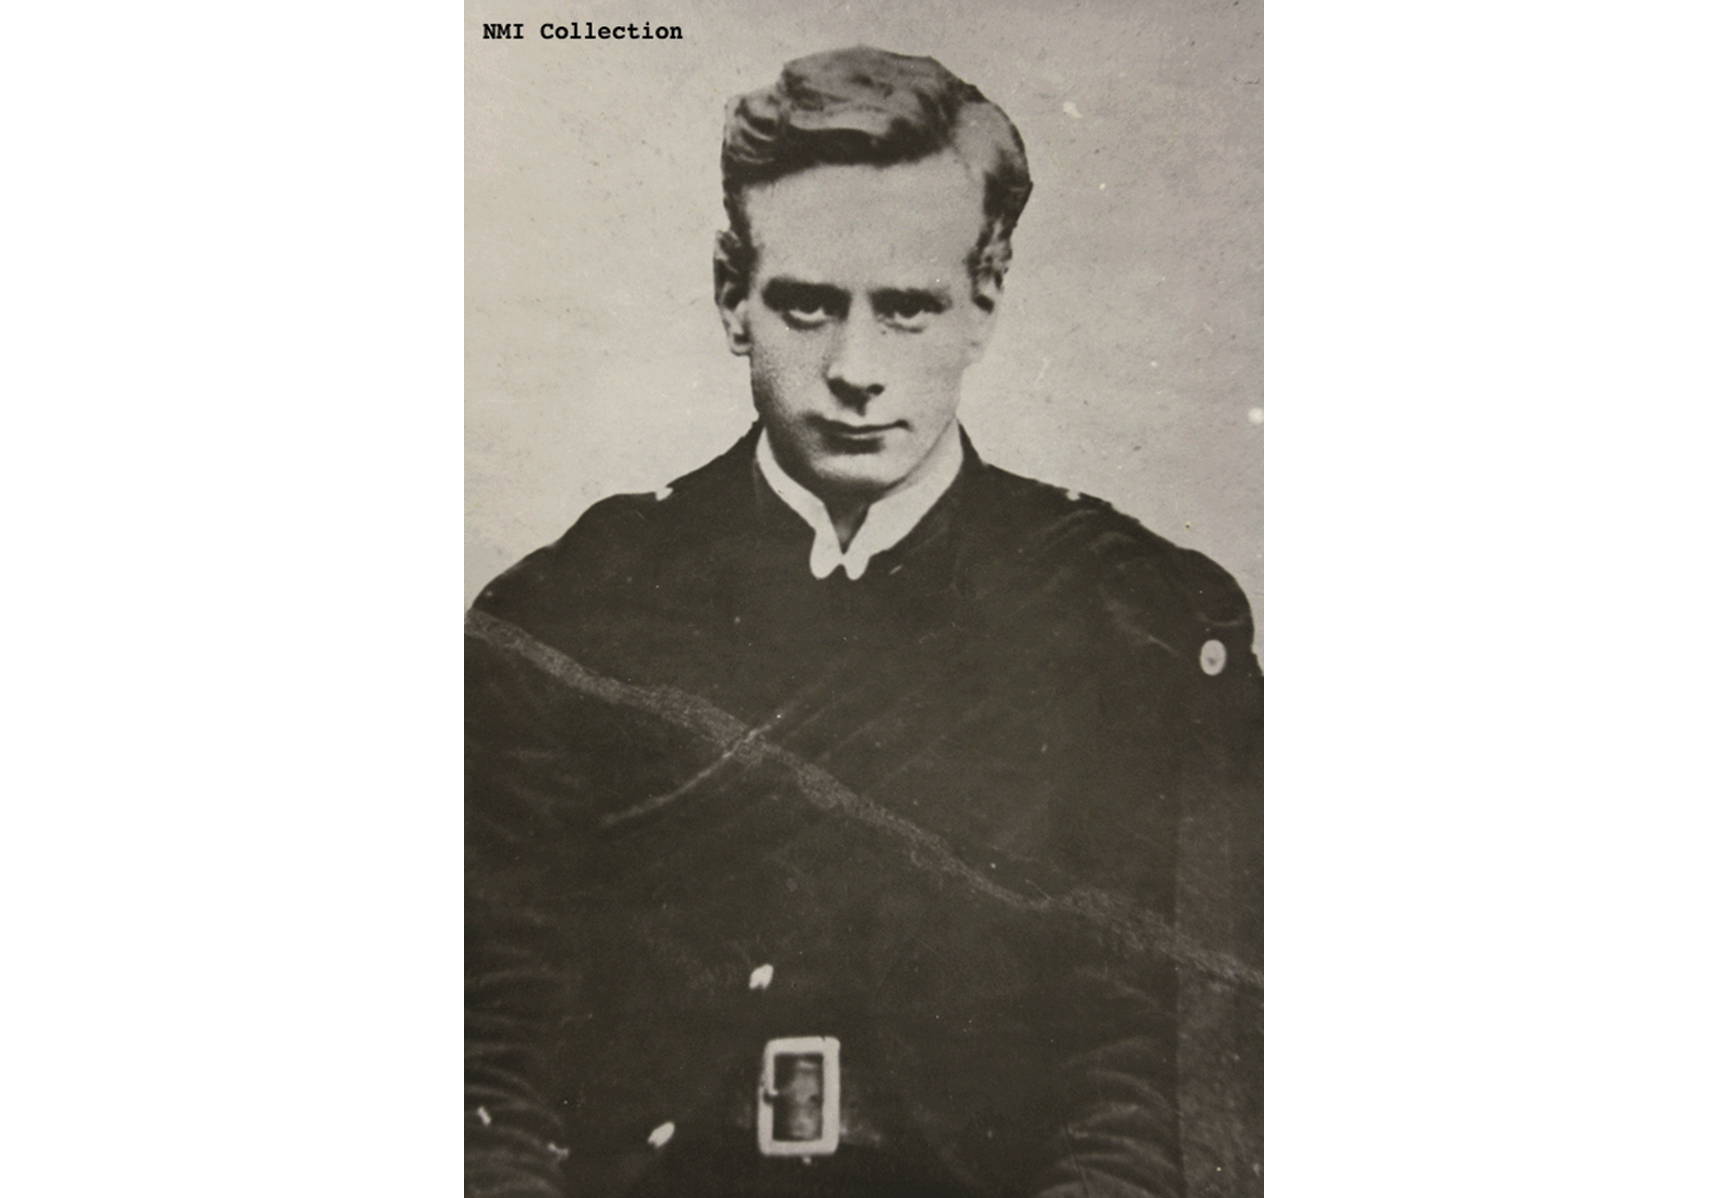 Liam Mellows who led the men in the West of Ireland during the Rising and became the director of supplies for the IRA during the War of  Independence.